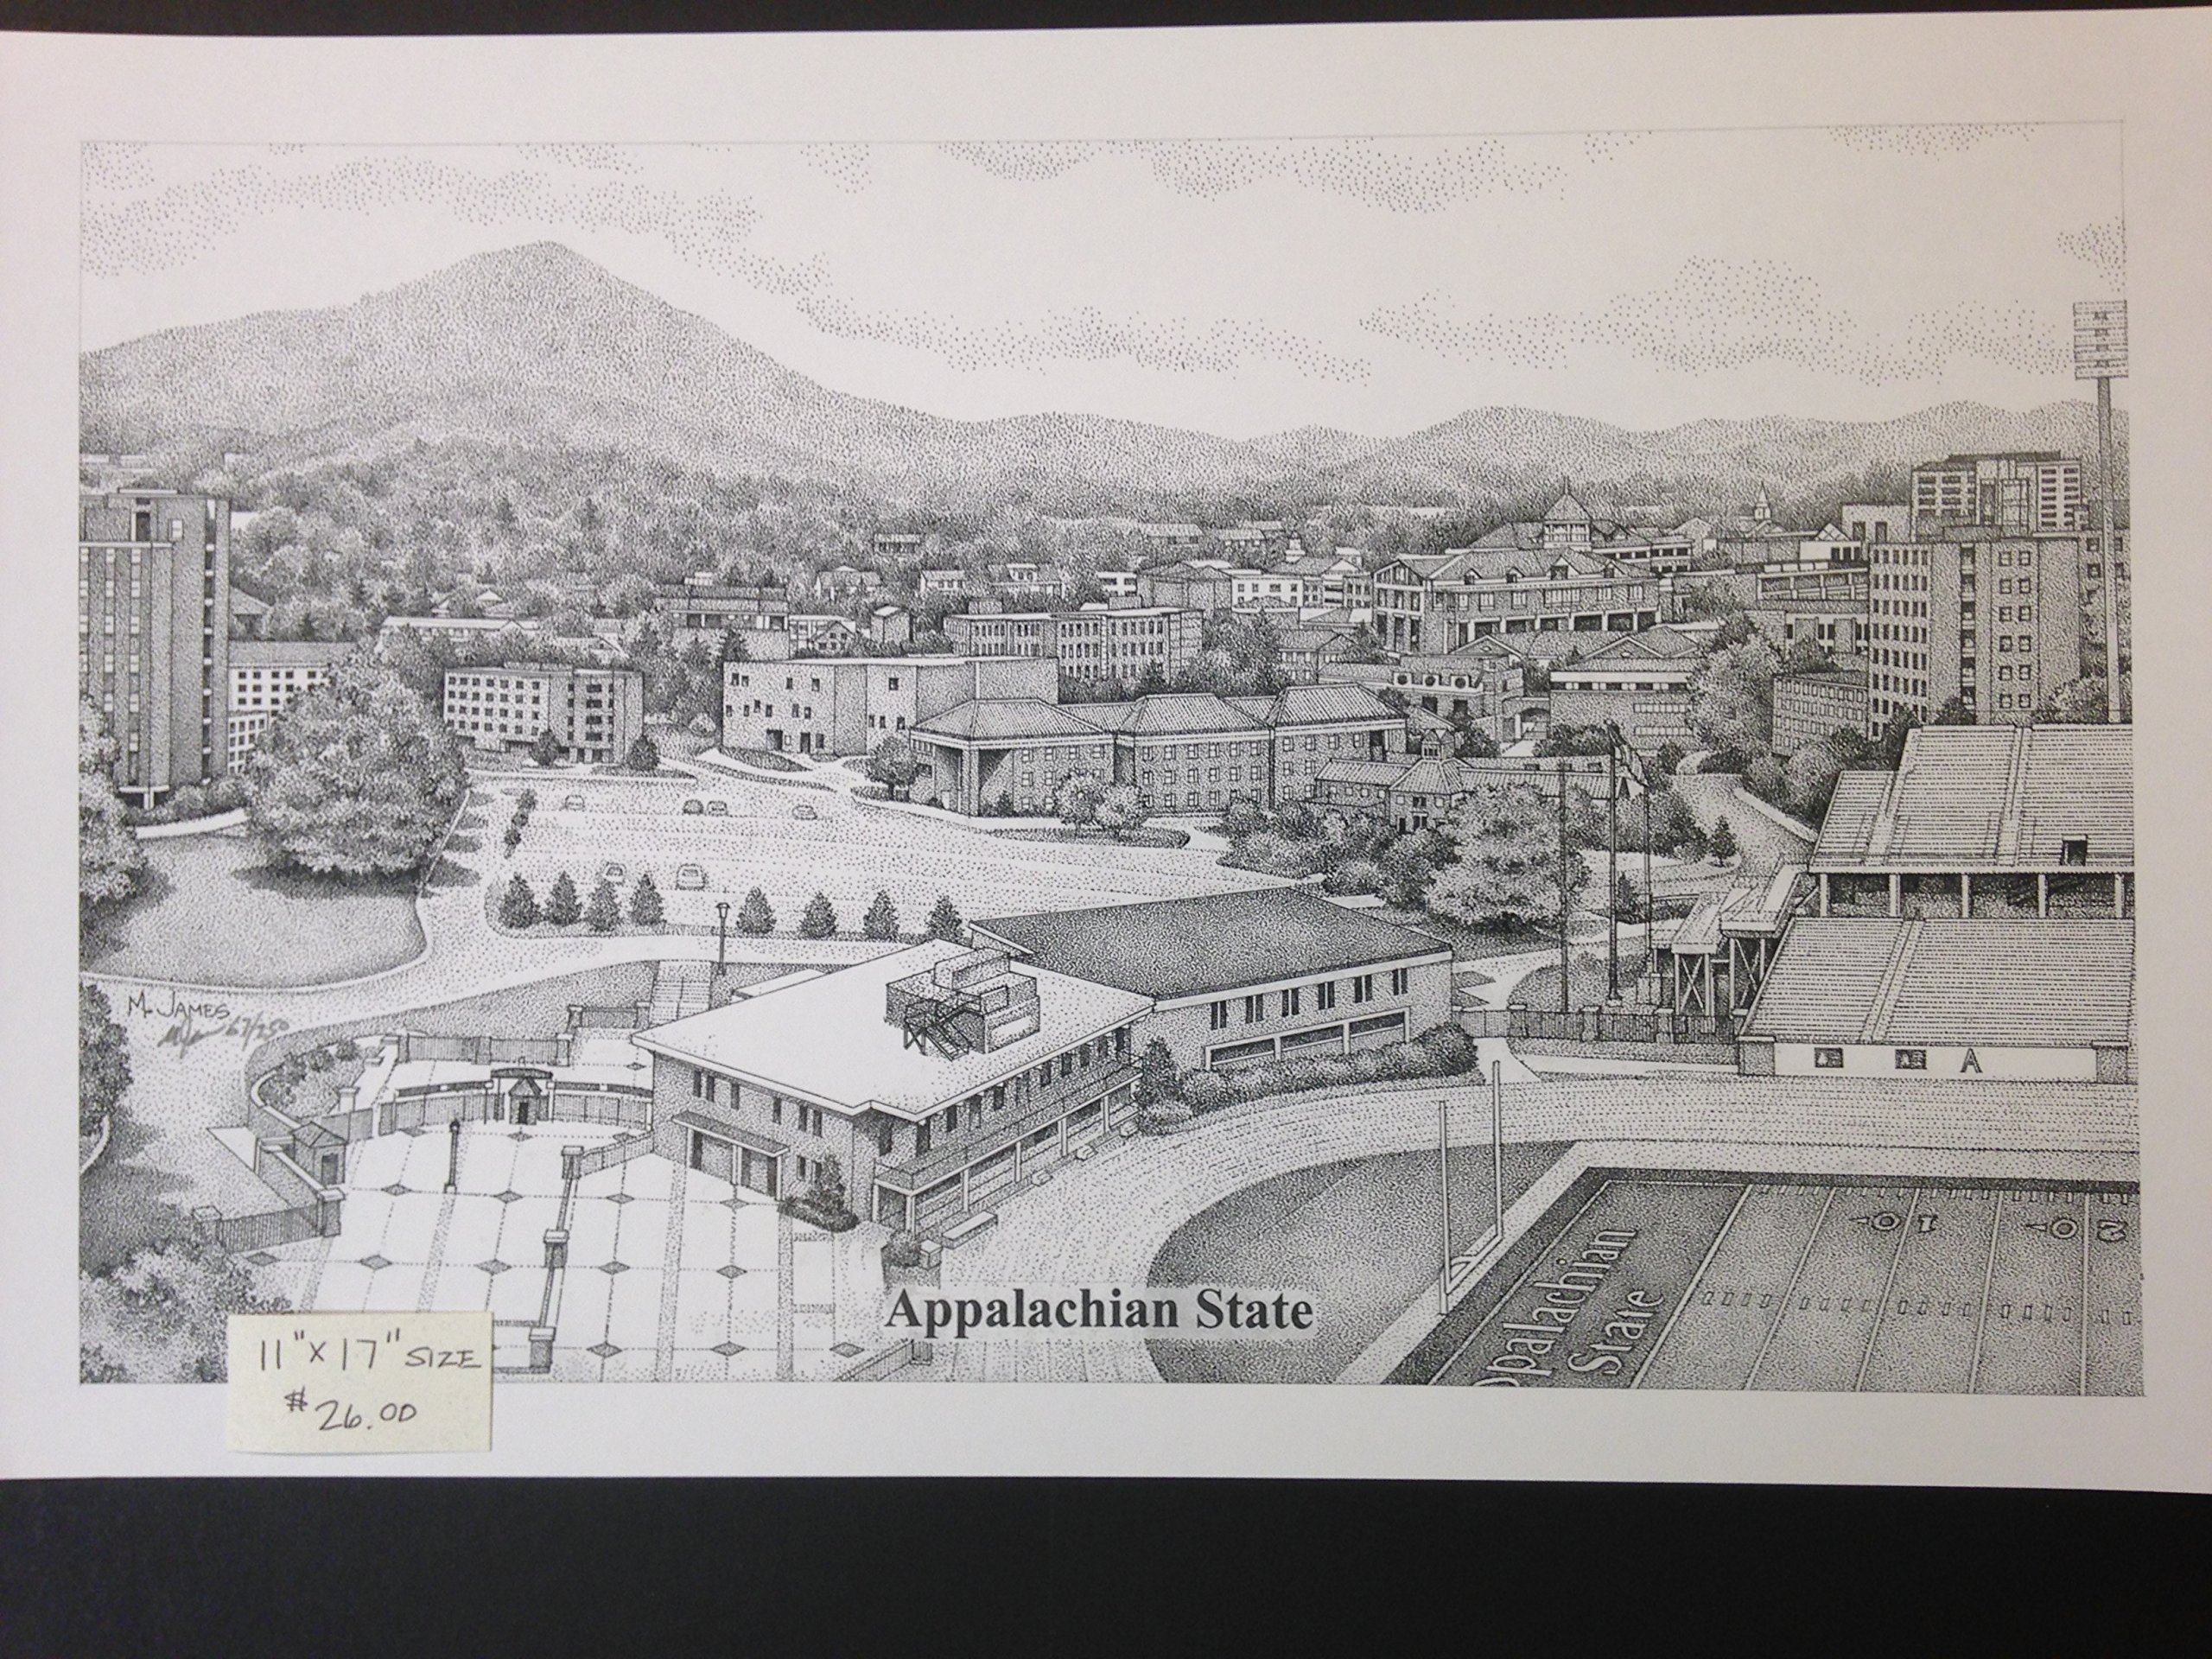 Appalachian State University 11x17 Panorama Print